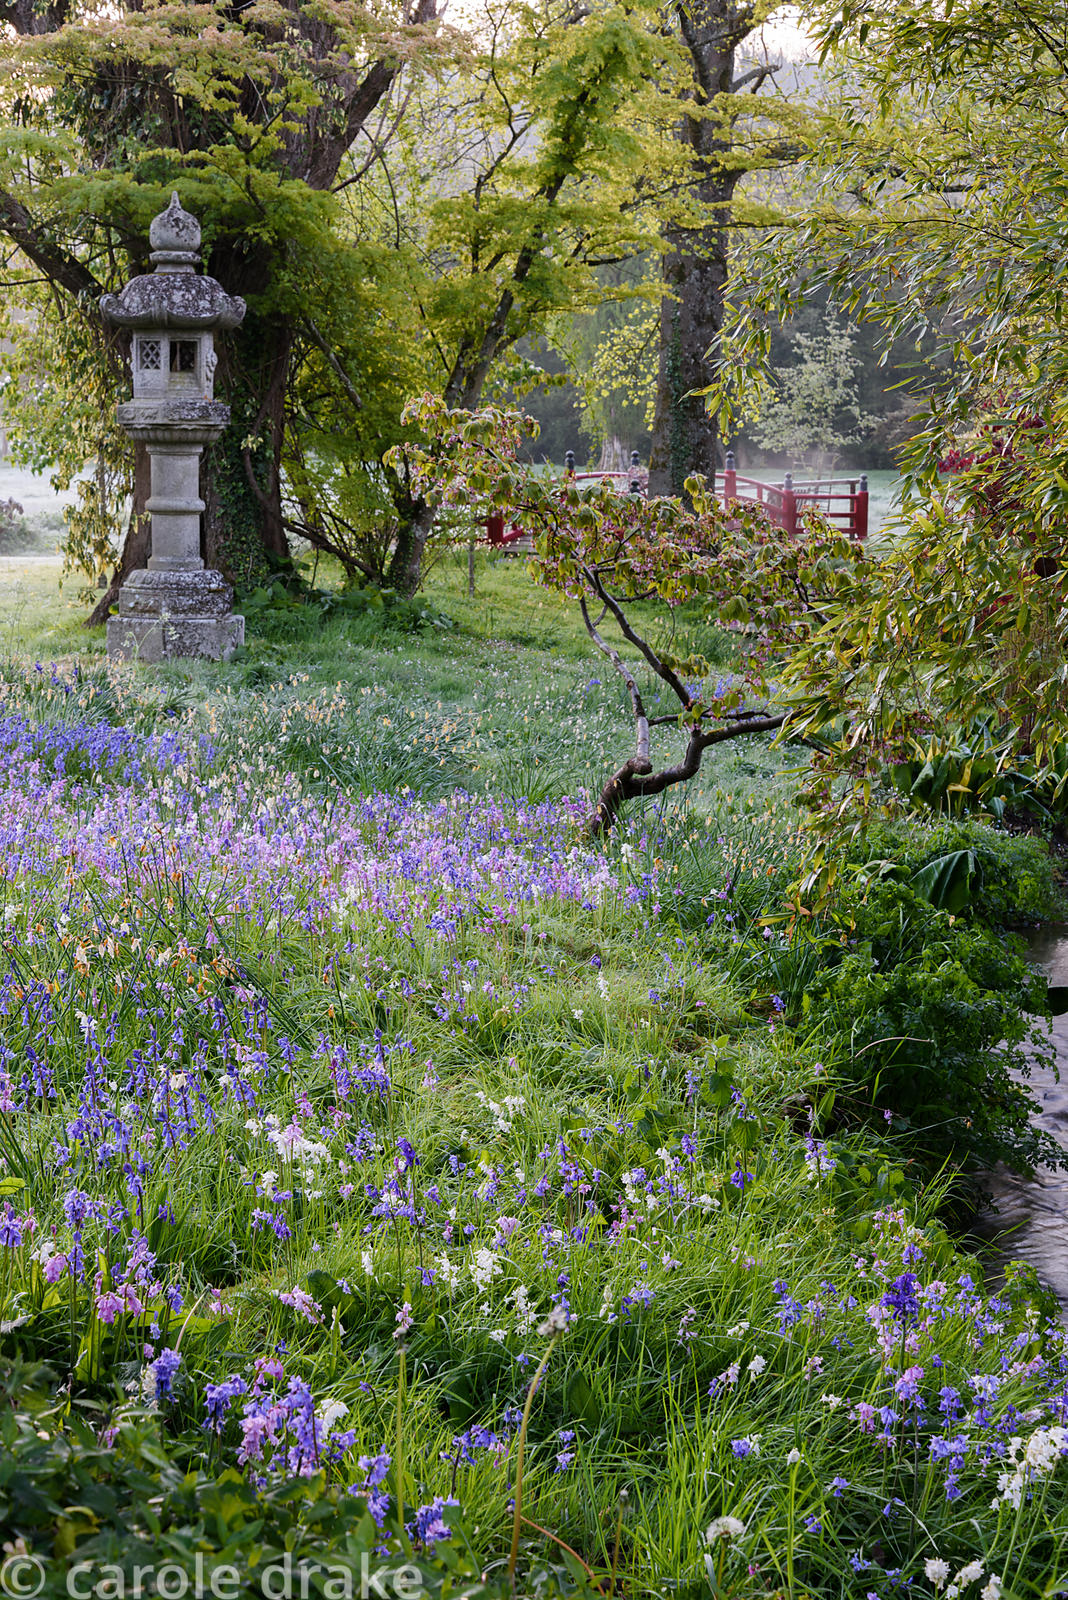 Bluebells including pink and white flowered forms around streams and a temple lantern in the Japanese garden at Heale House, ...